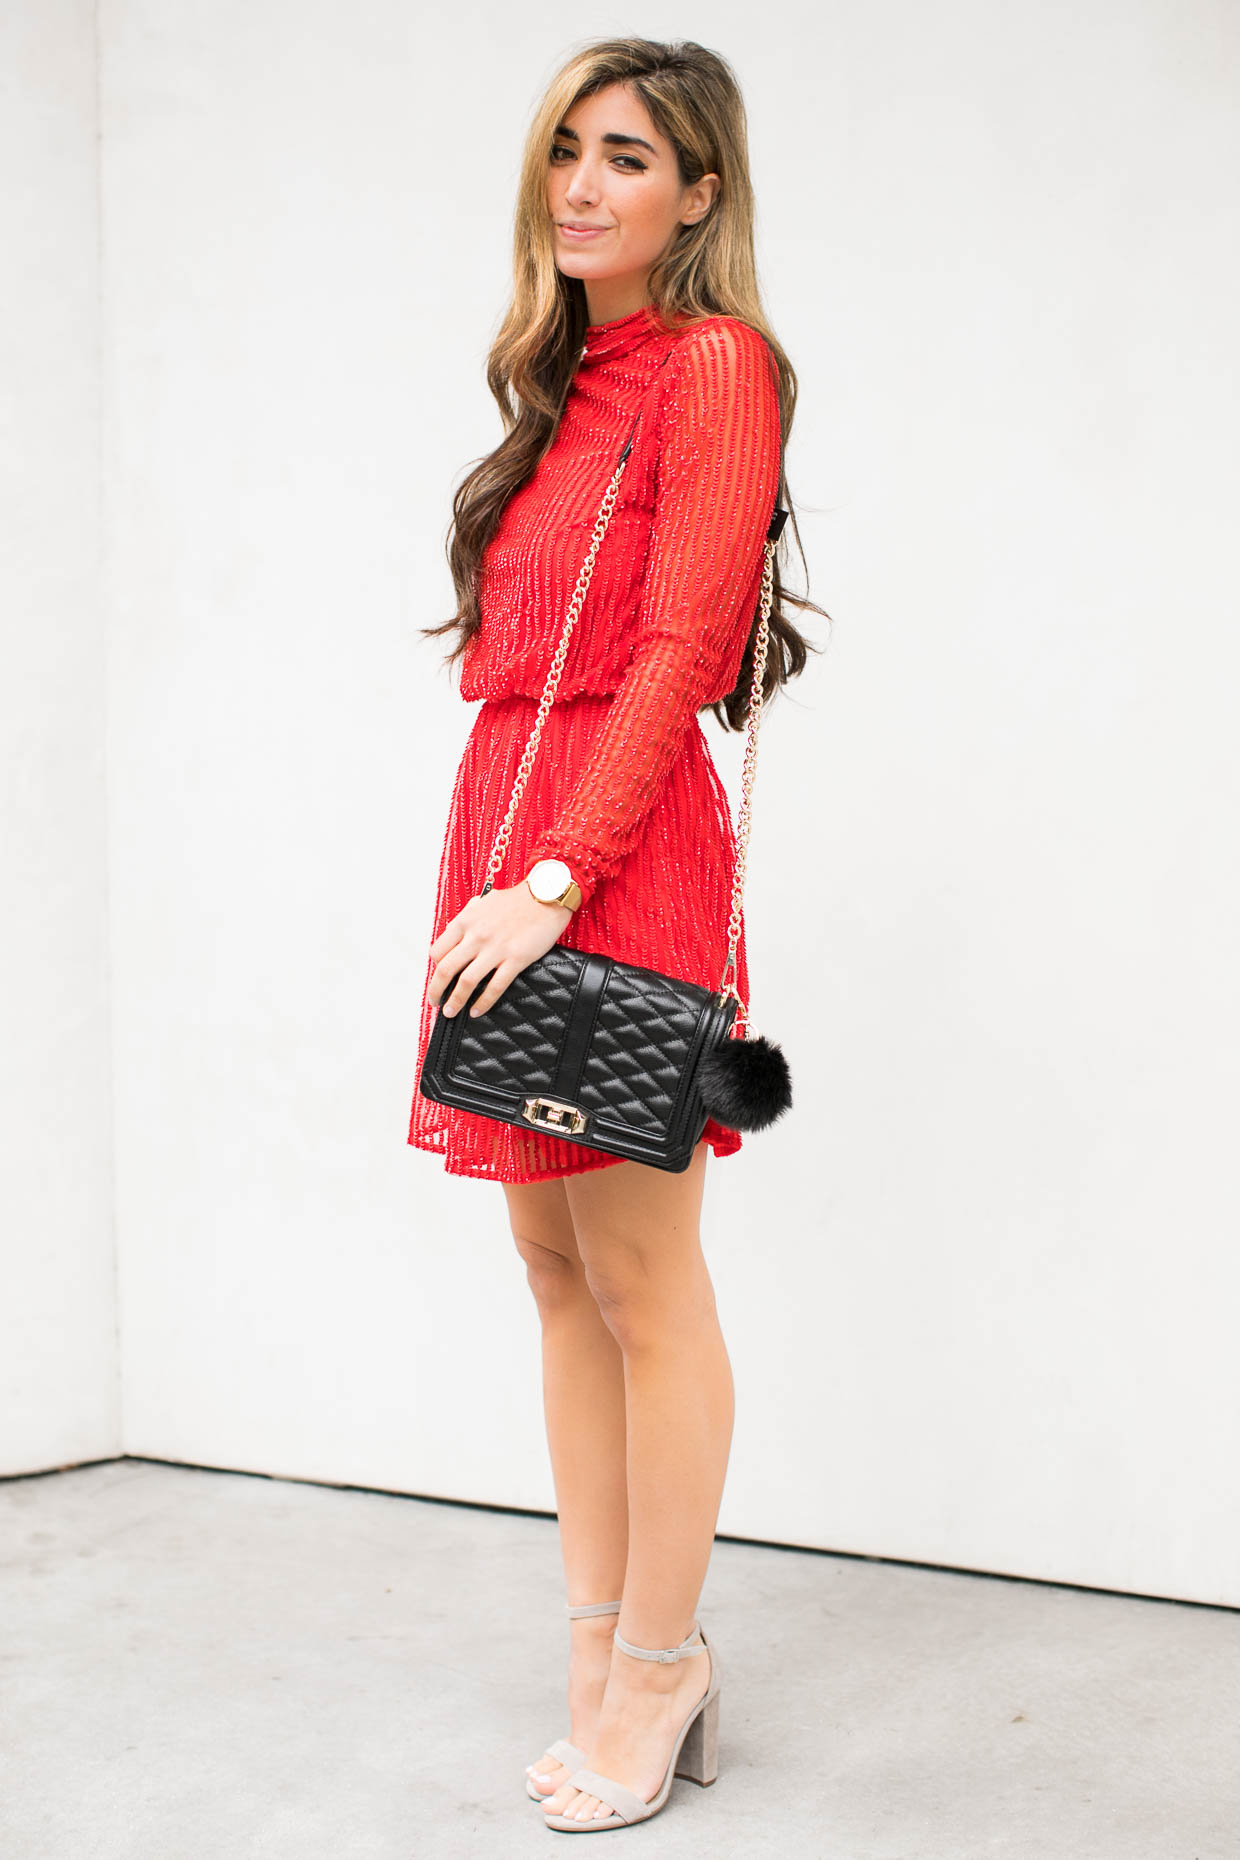 Holiday red dress outfit - AOL Lifestyle